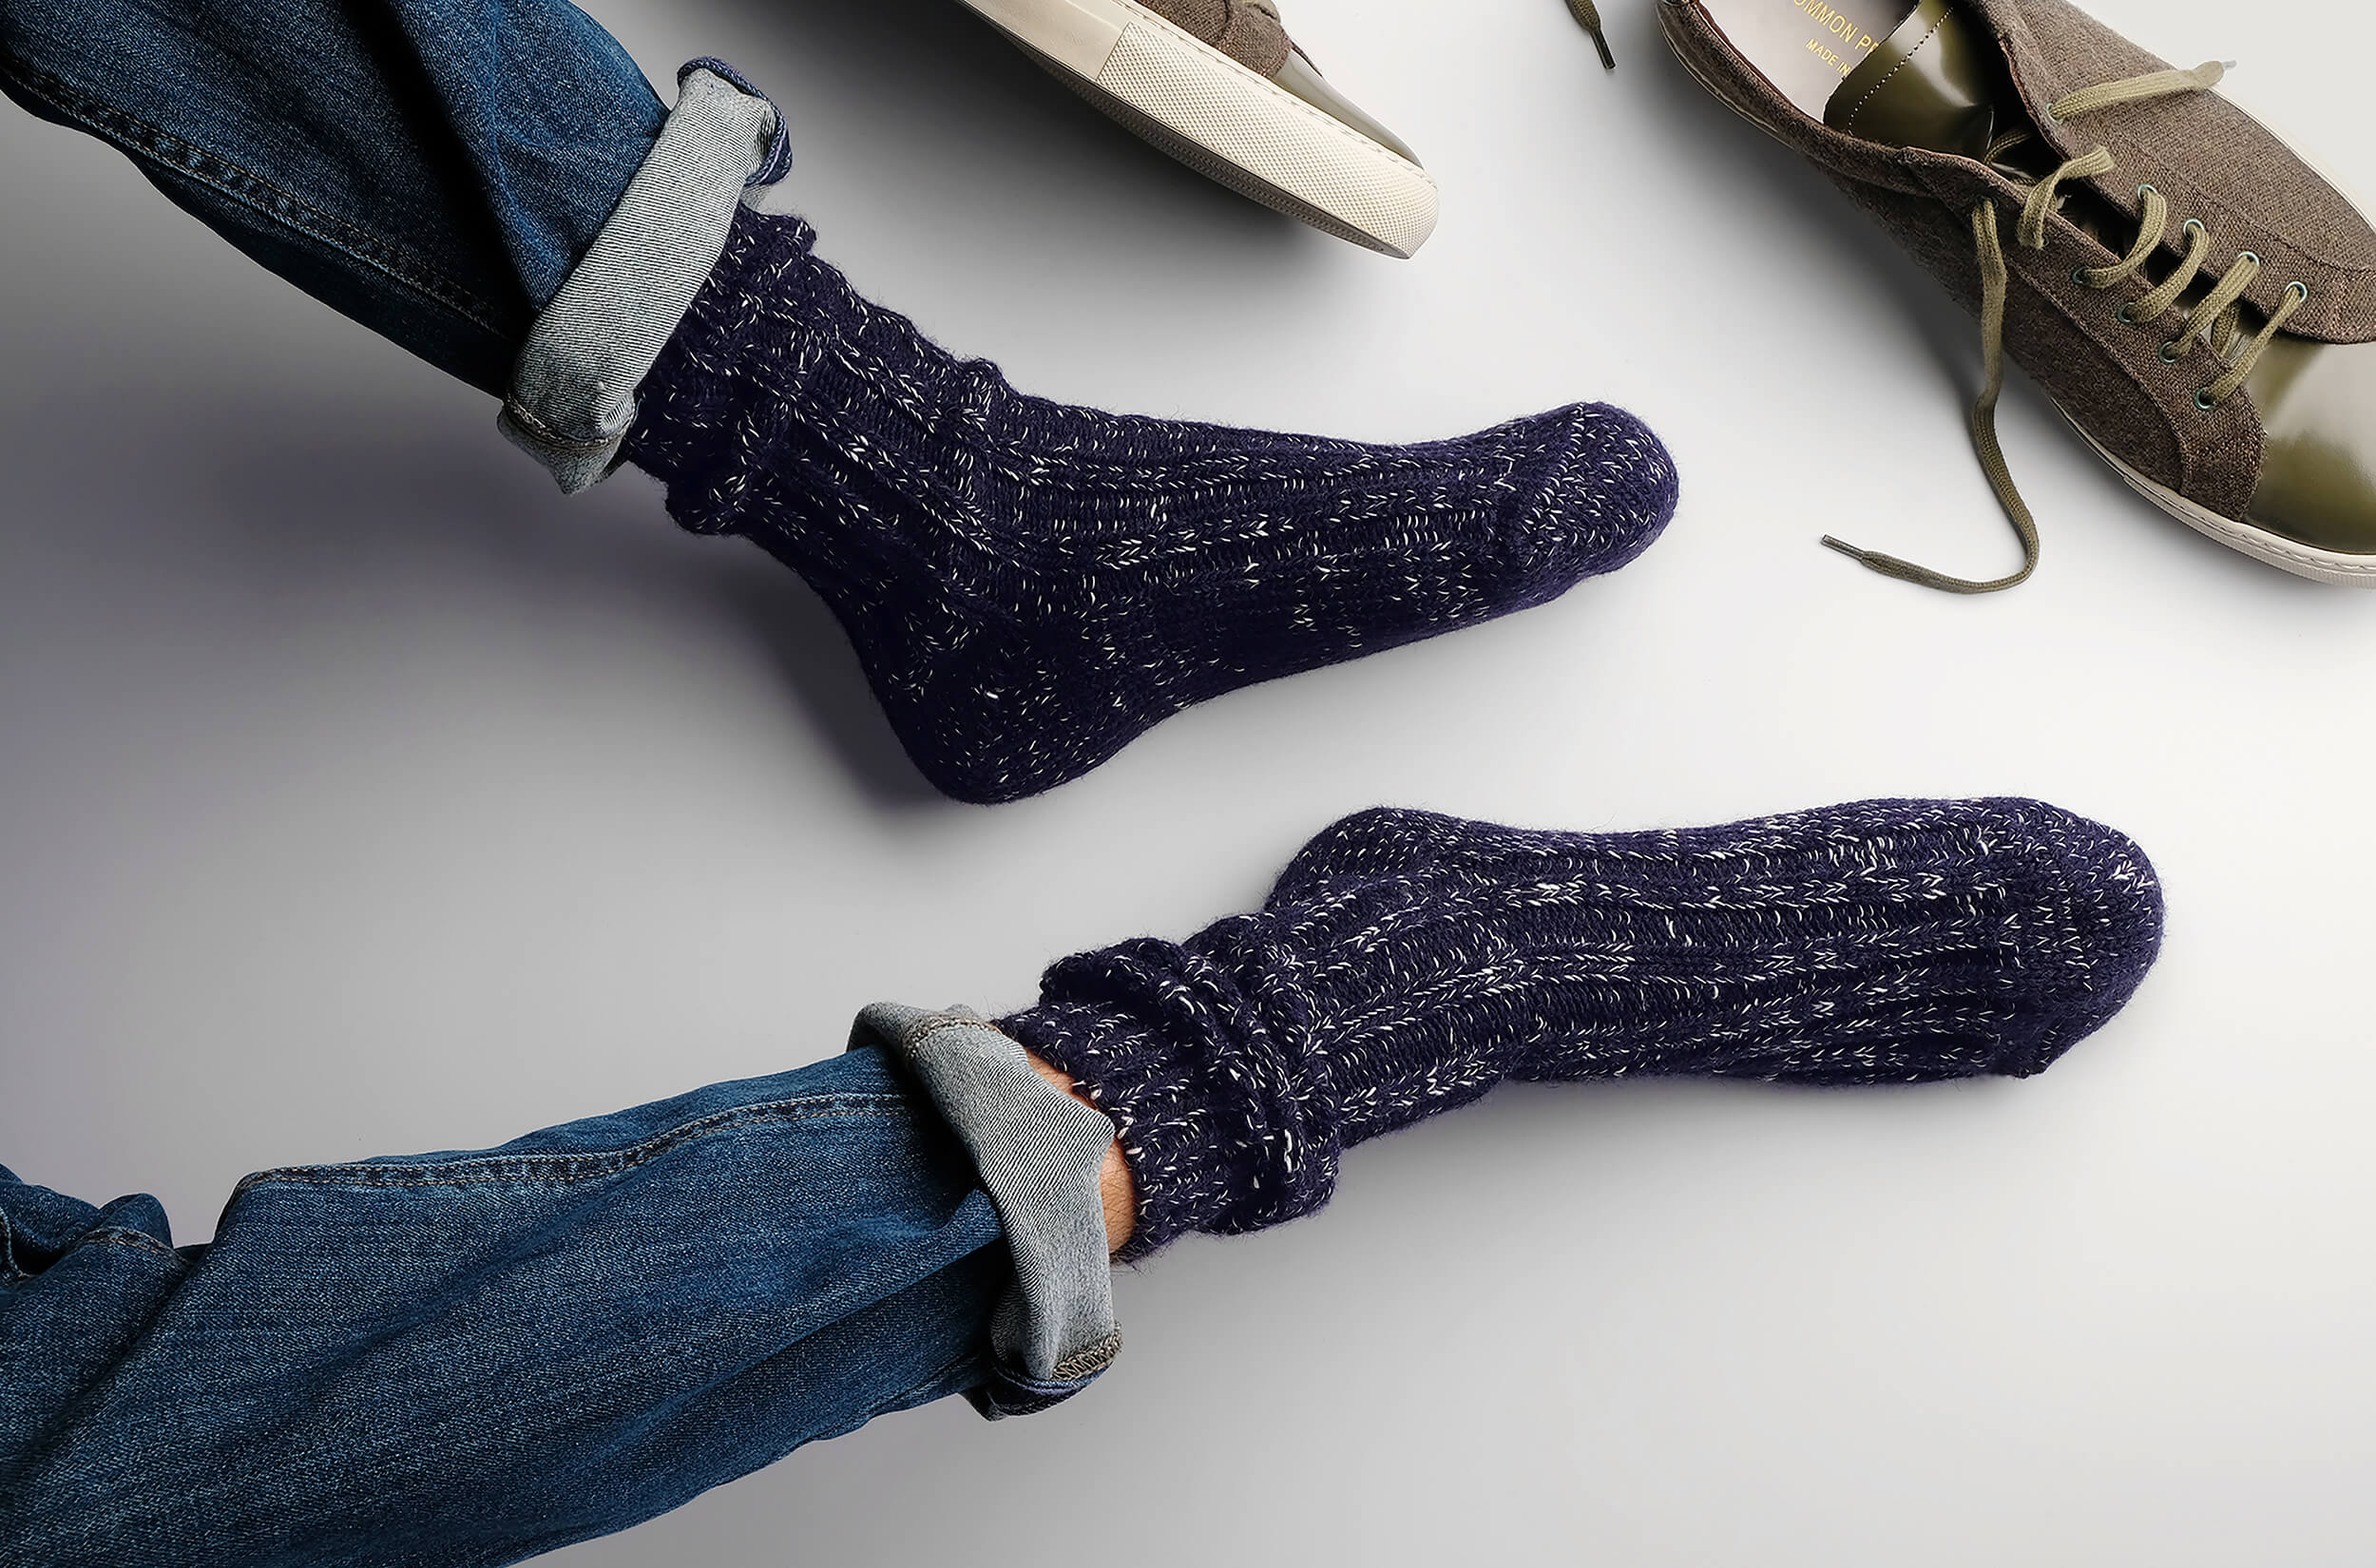 Men's Finest Socks - Crafted in Italy